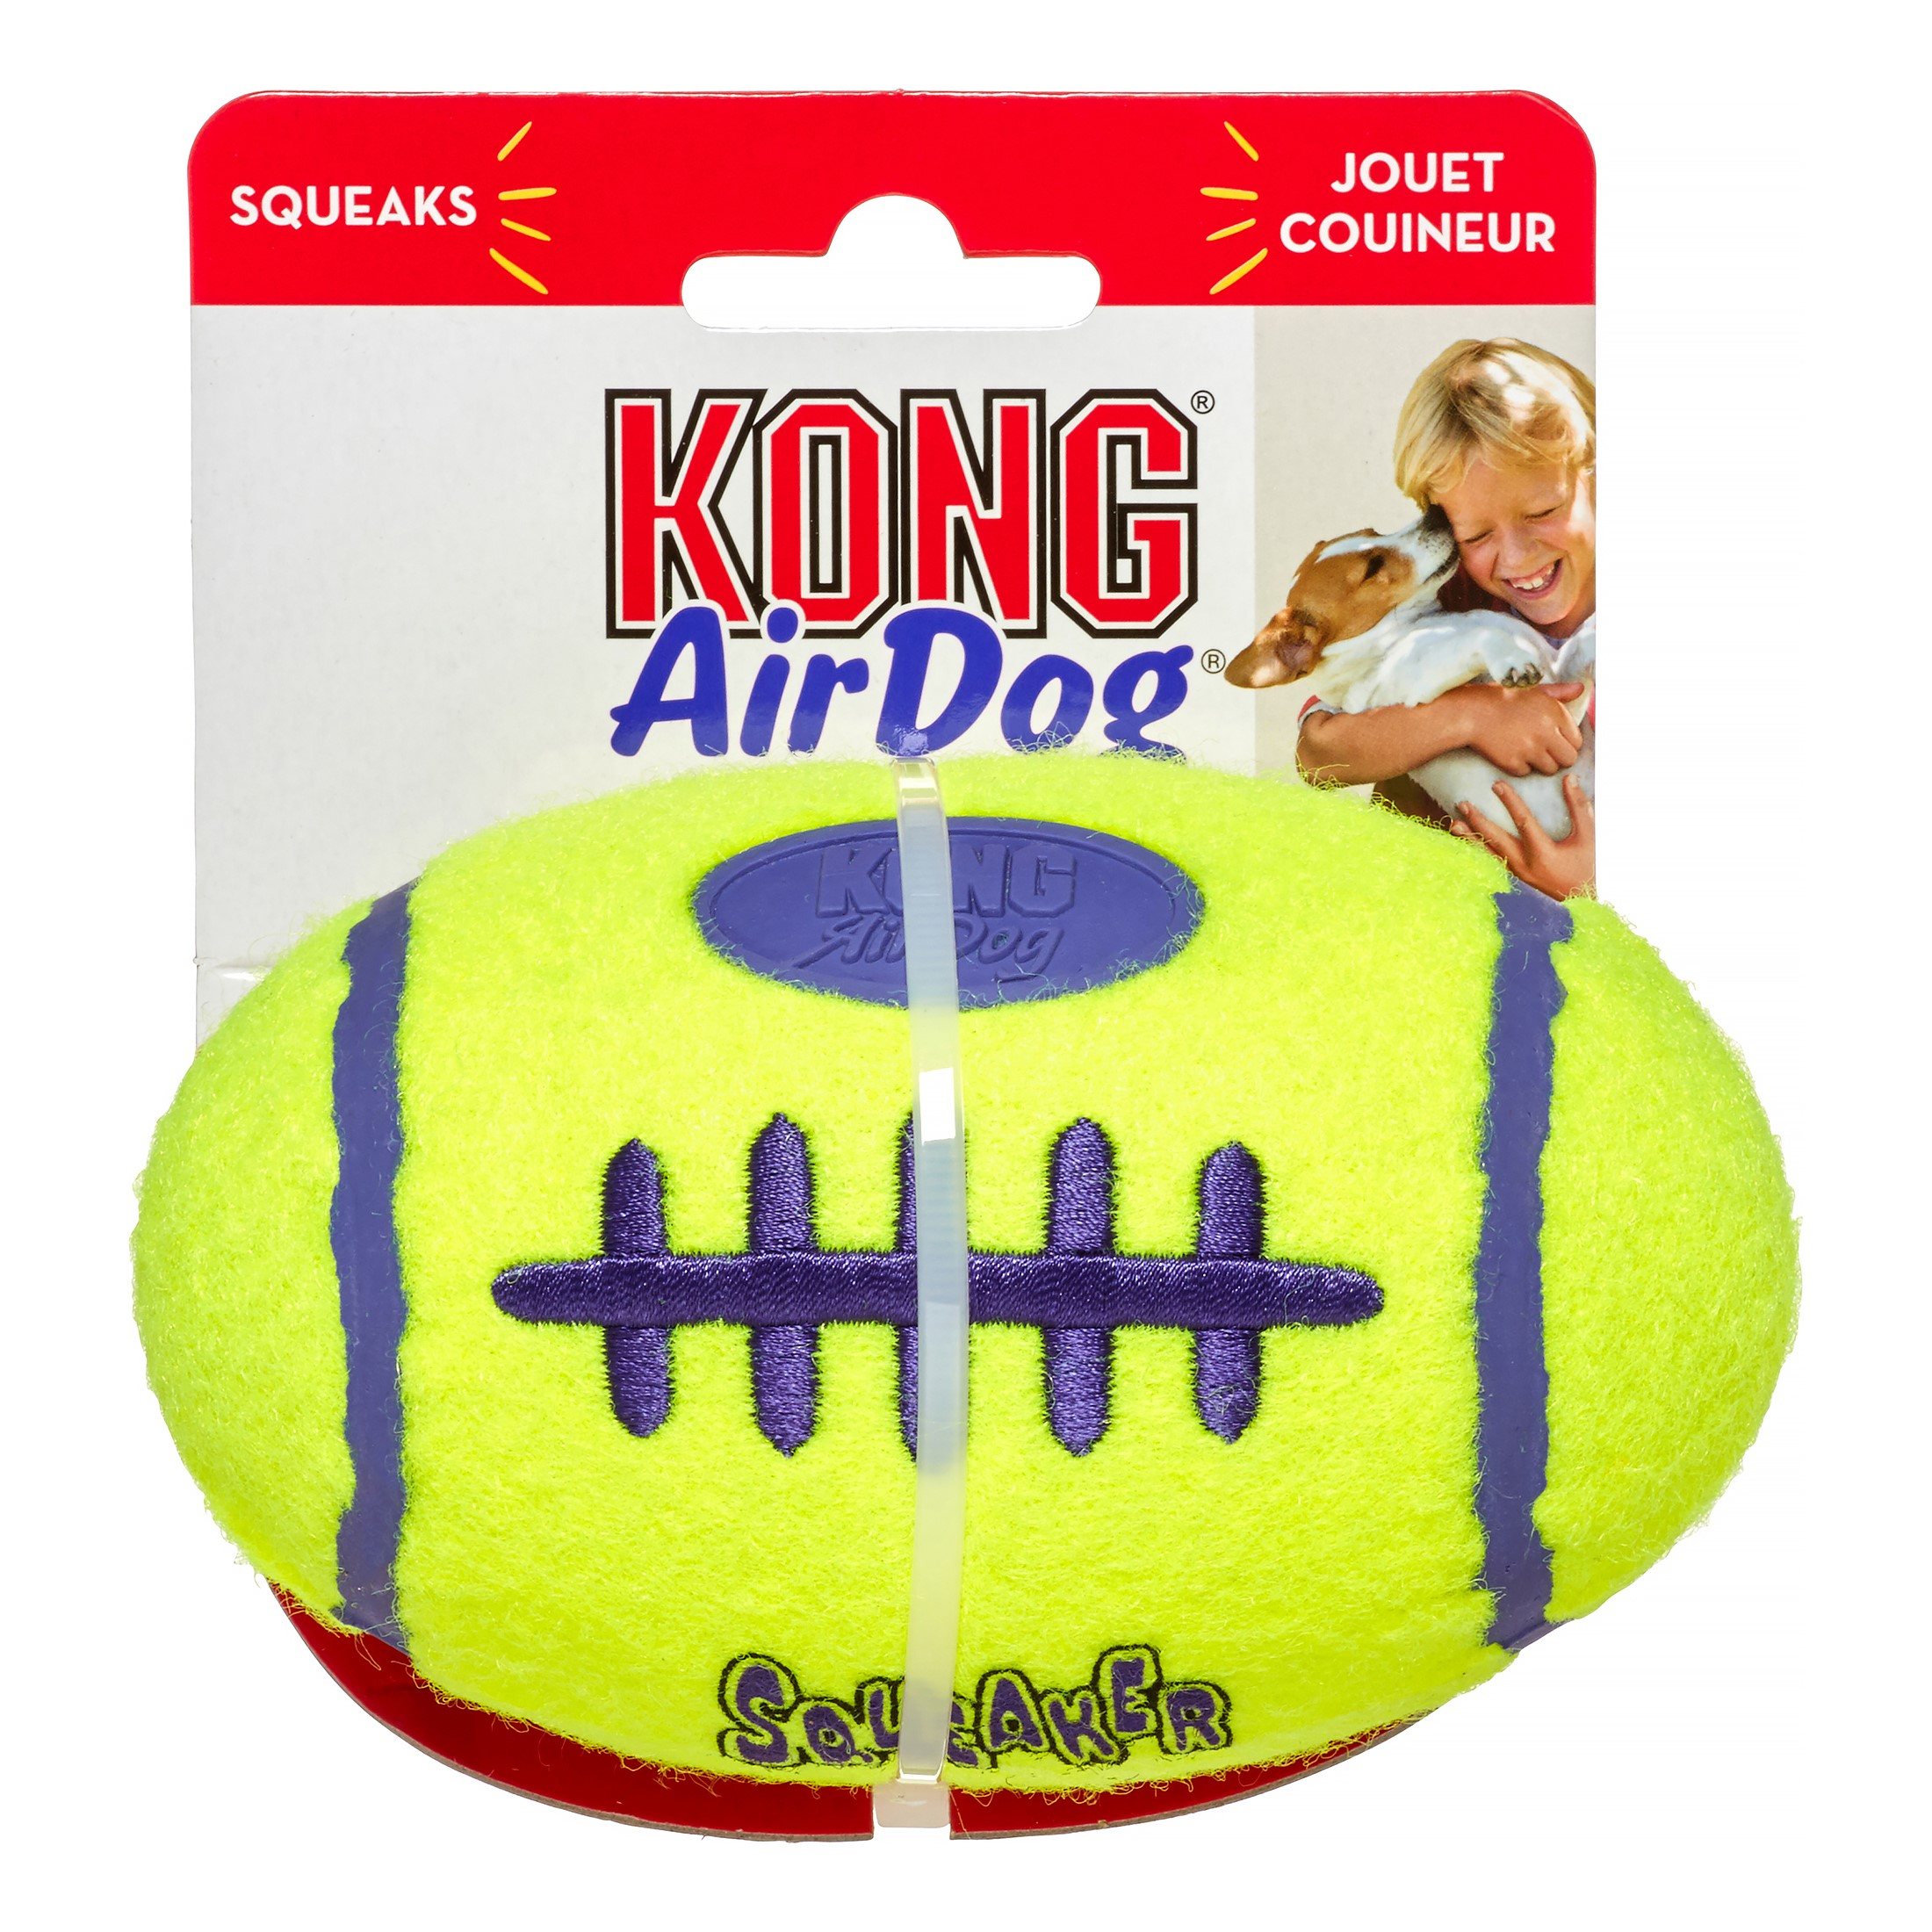 KONG AirDog Squeaker Foorball Dog Toy, Medium